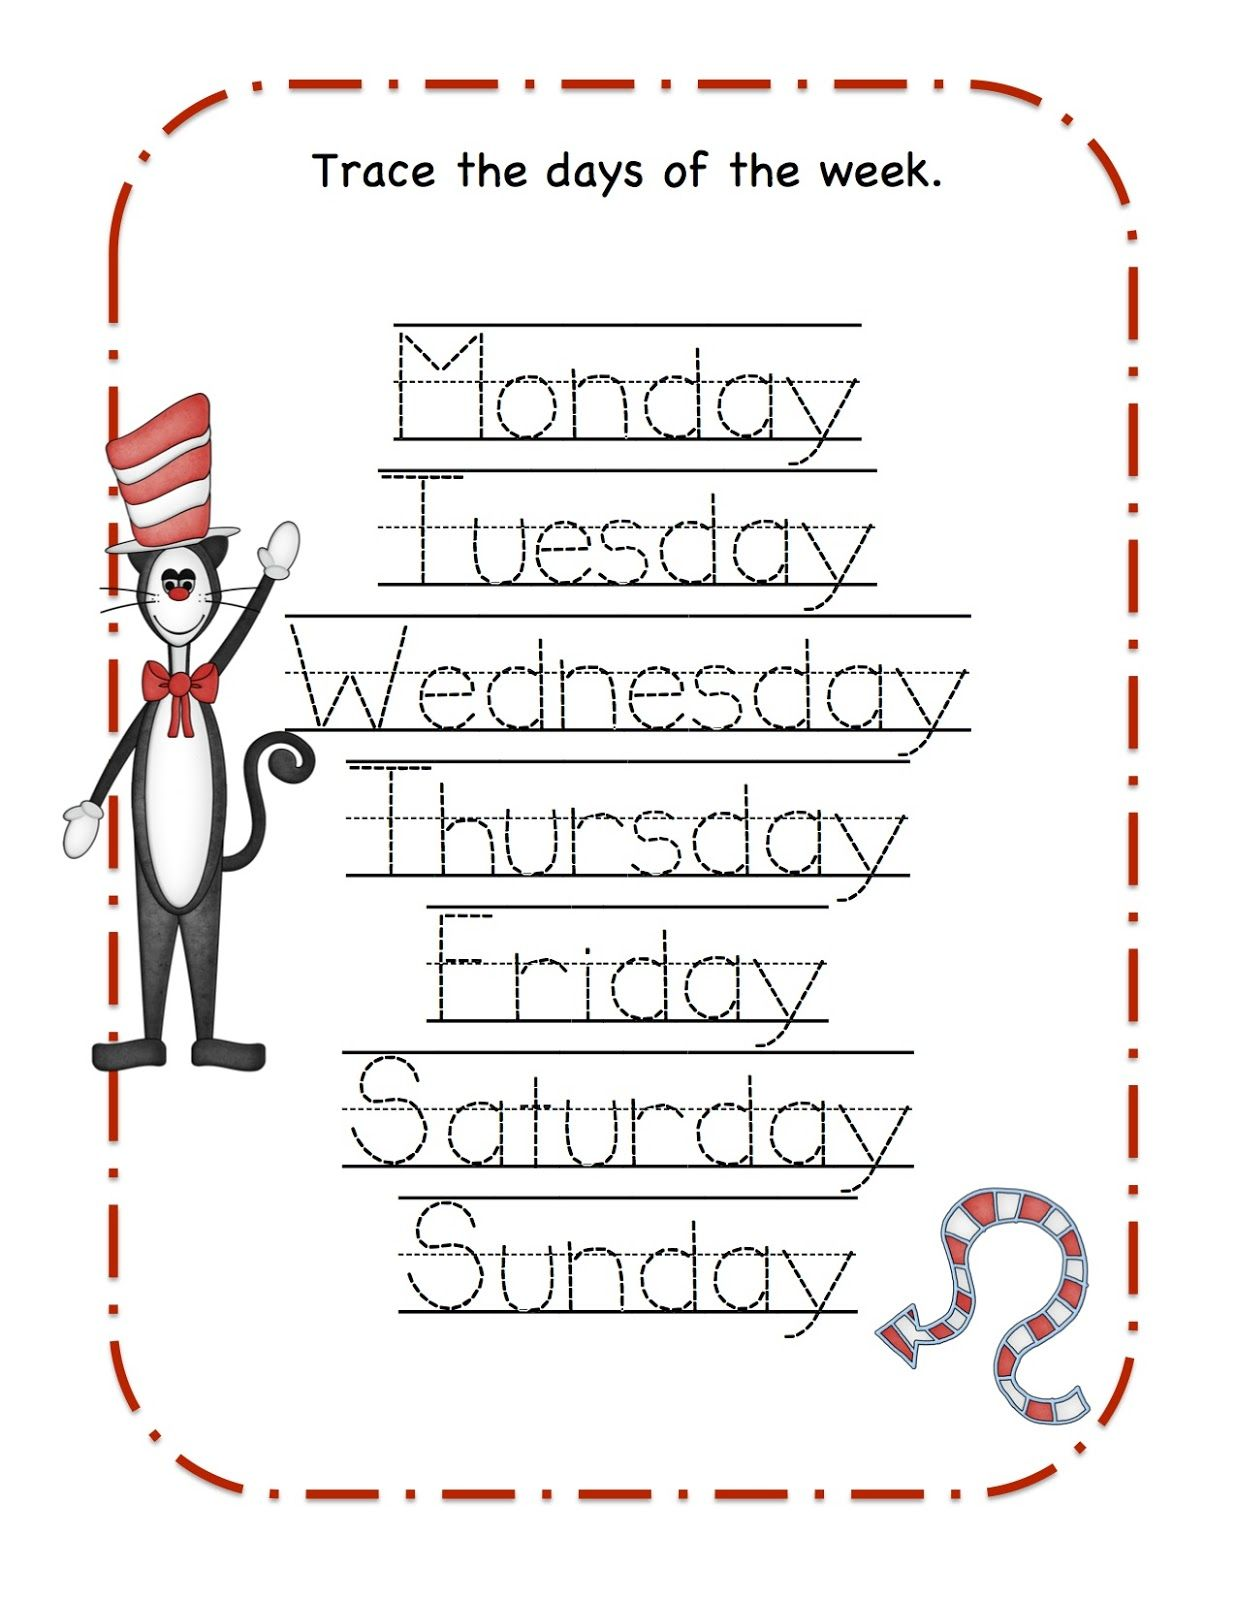 Preschool Printables That Cat Printable Seuss Days Of